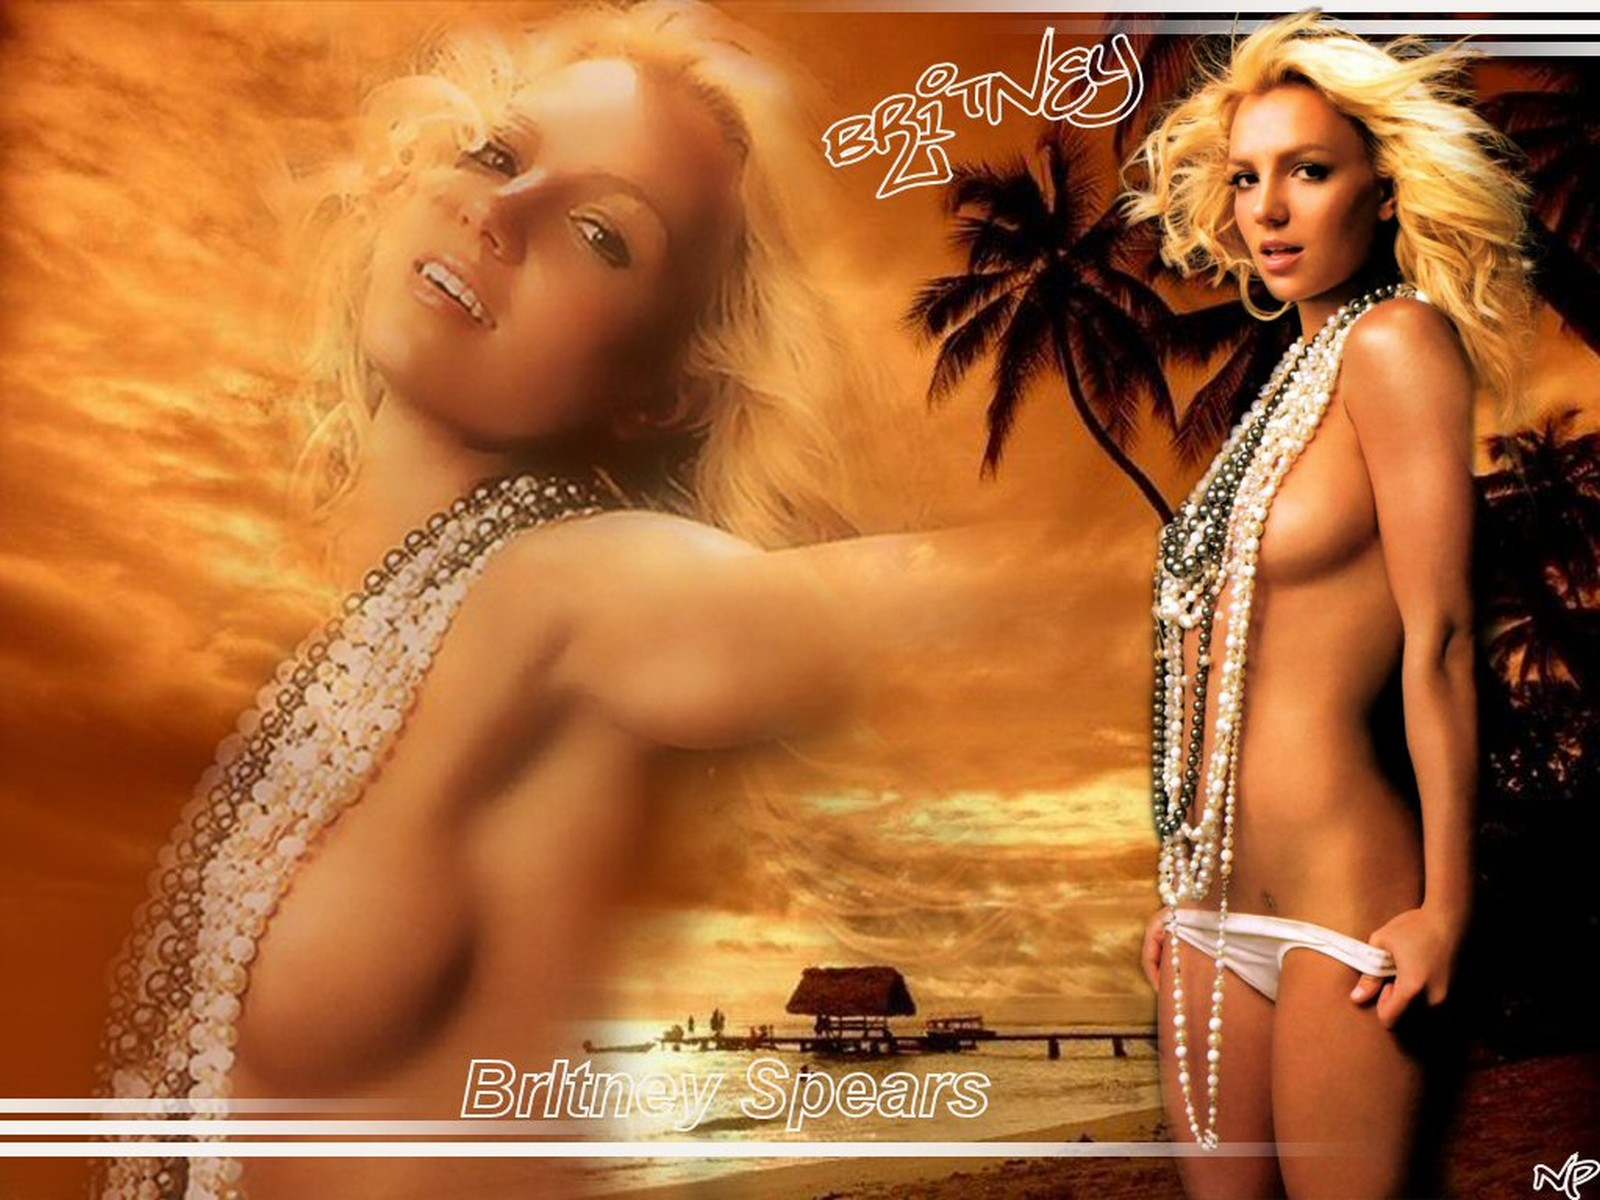 Britney Spears Bold Pics Sexy Hot images in Seducing Poses Showing Boobs